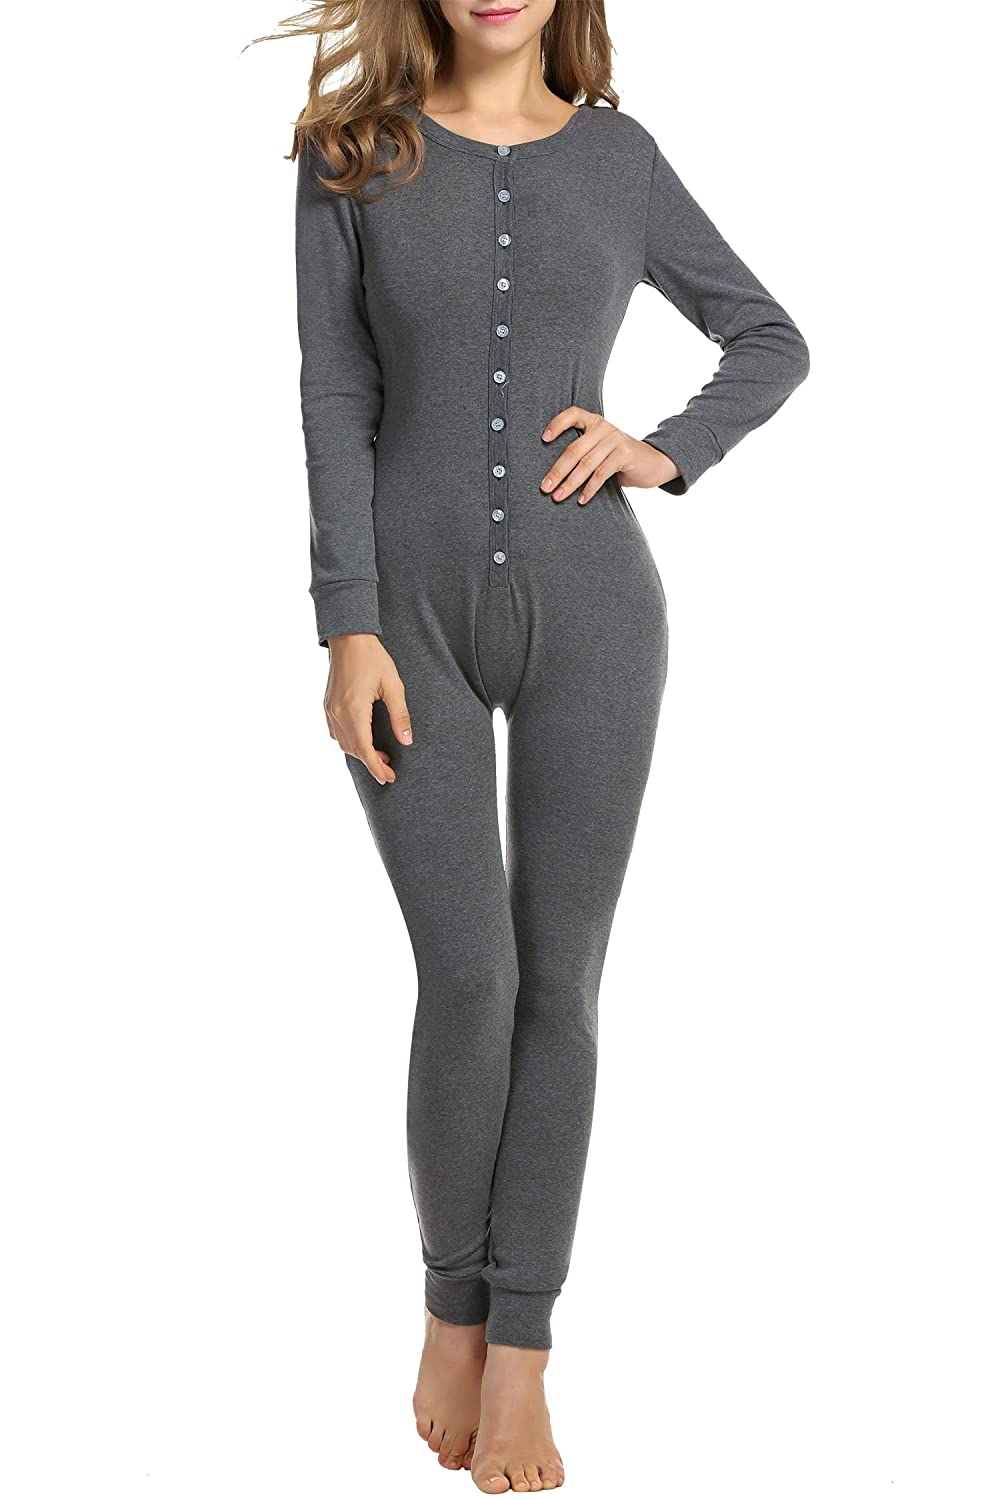 HOTOUCH Womens Long Sleeve Union Suit Thermal Underwear One Piece Dark Grey M *COK005180_DGR_M